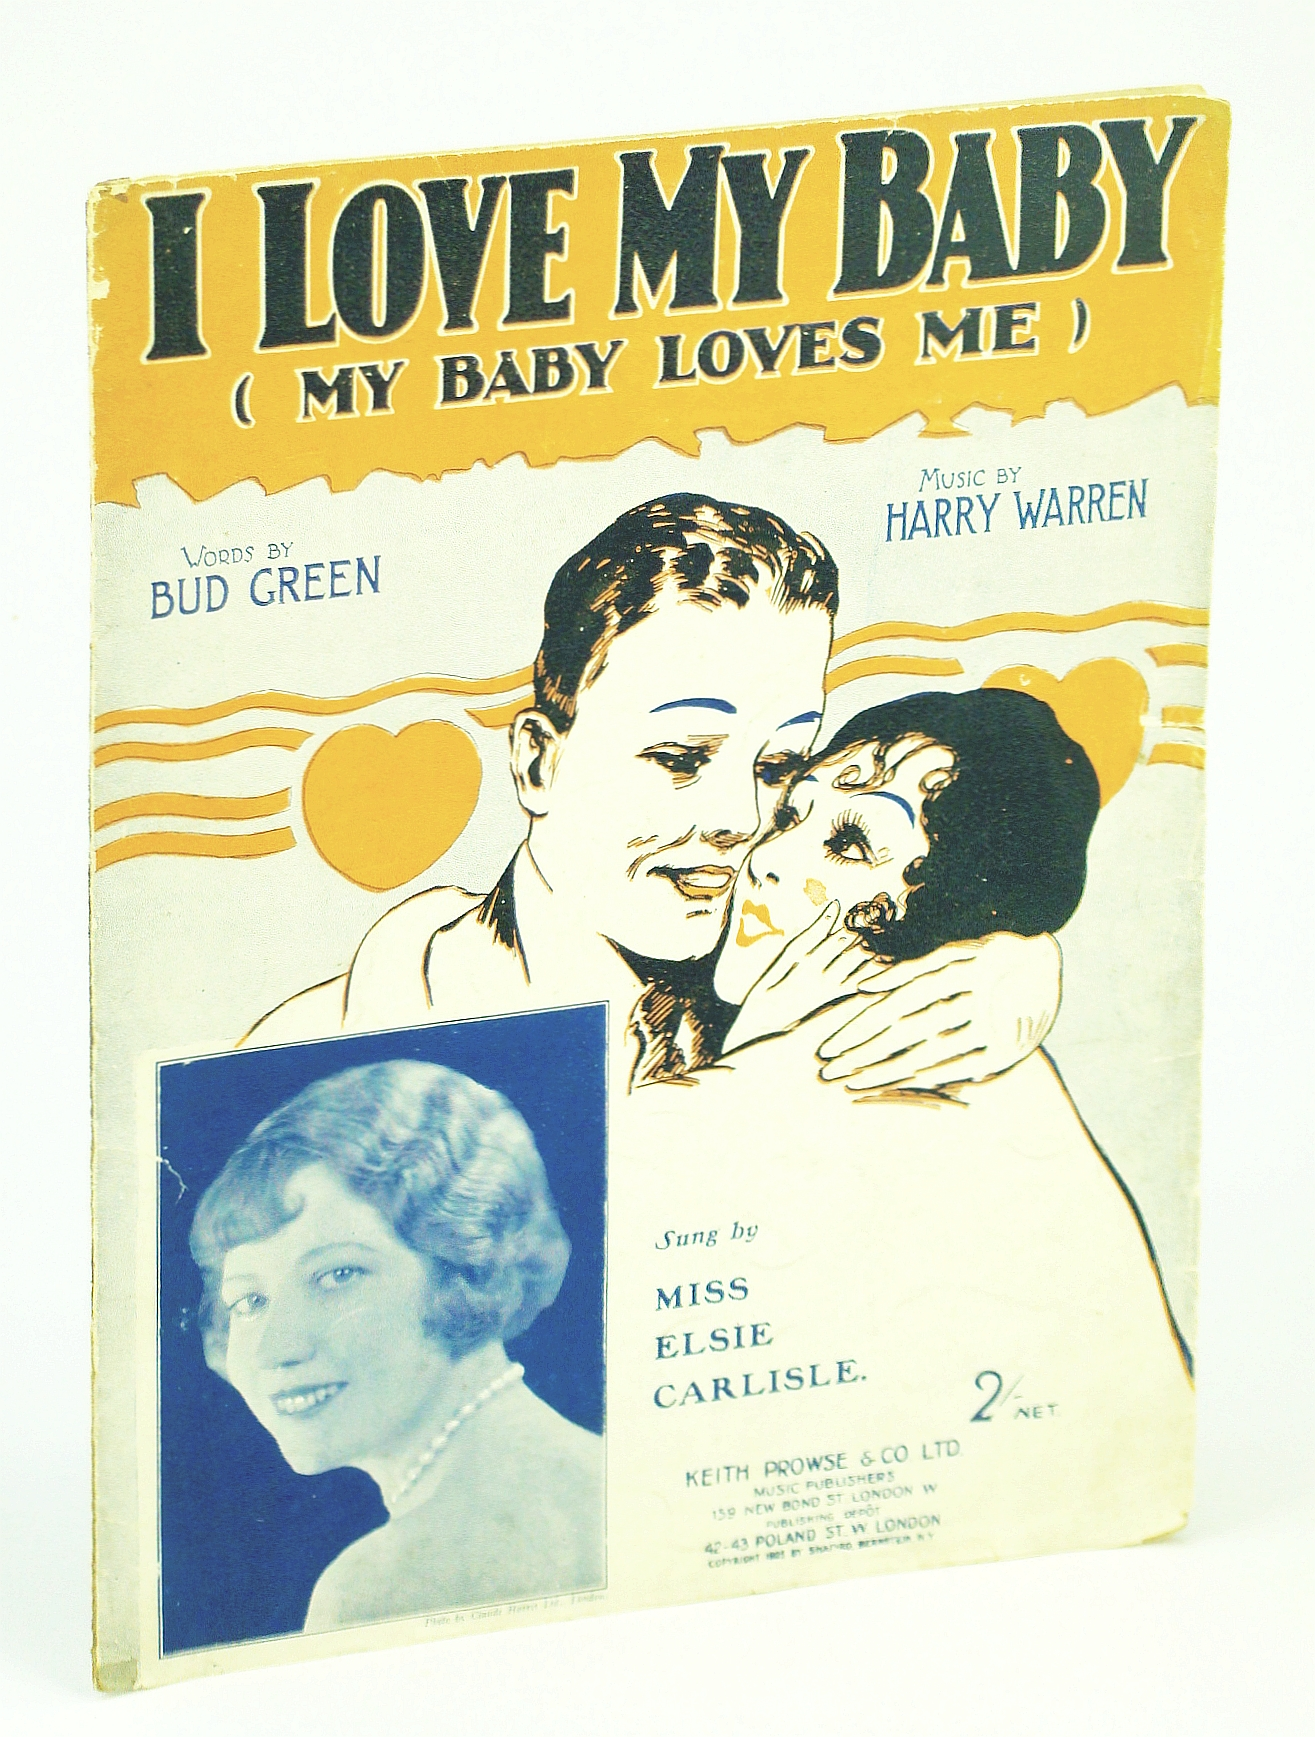 Image for I Love My Baby (My Baby Loves Me): Sheet Music for Piano and Voice - Cover Photo of Elsie Carlisle